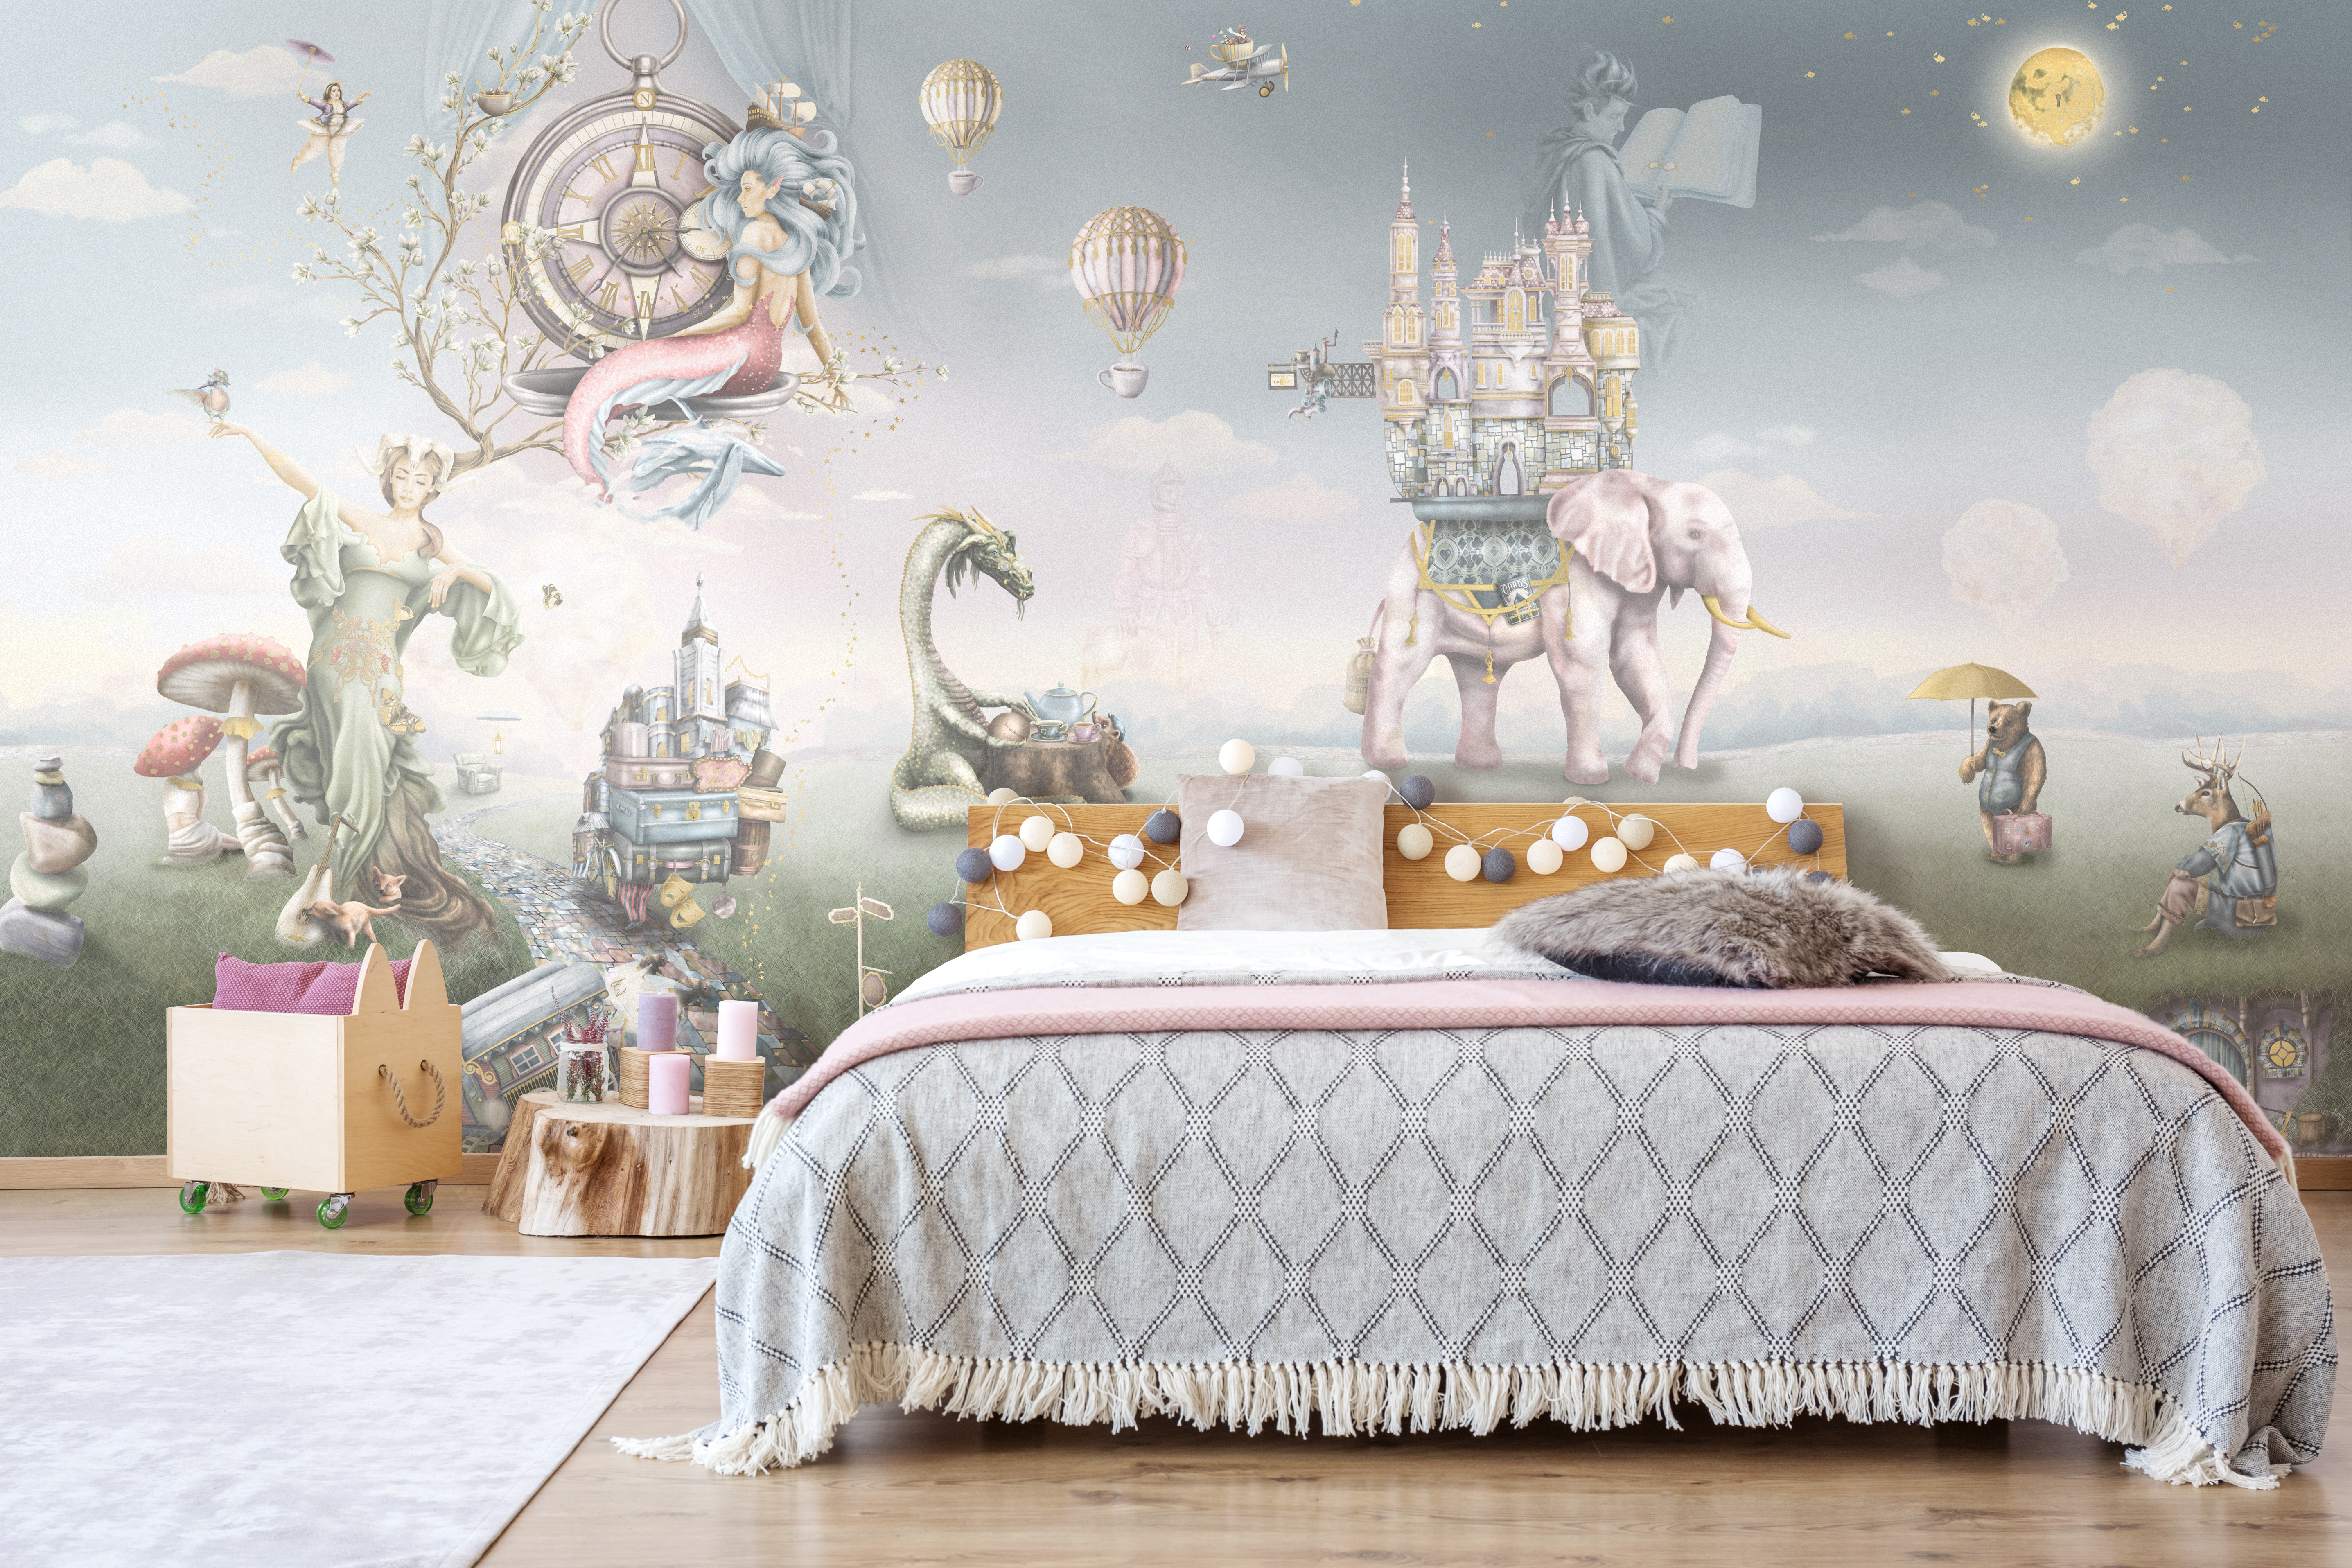 Dreamy Pastel Fairy Tale Kids Interior Decorating Wallpaper Wall Mural, Woodland creatures style with mermaid, dragon etc.